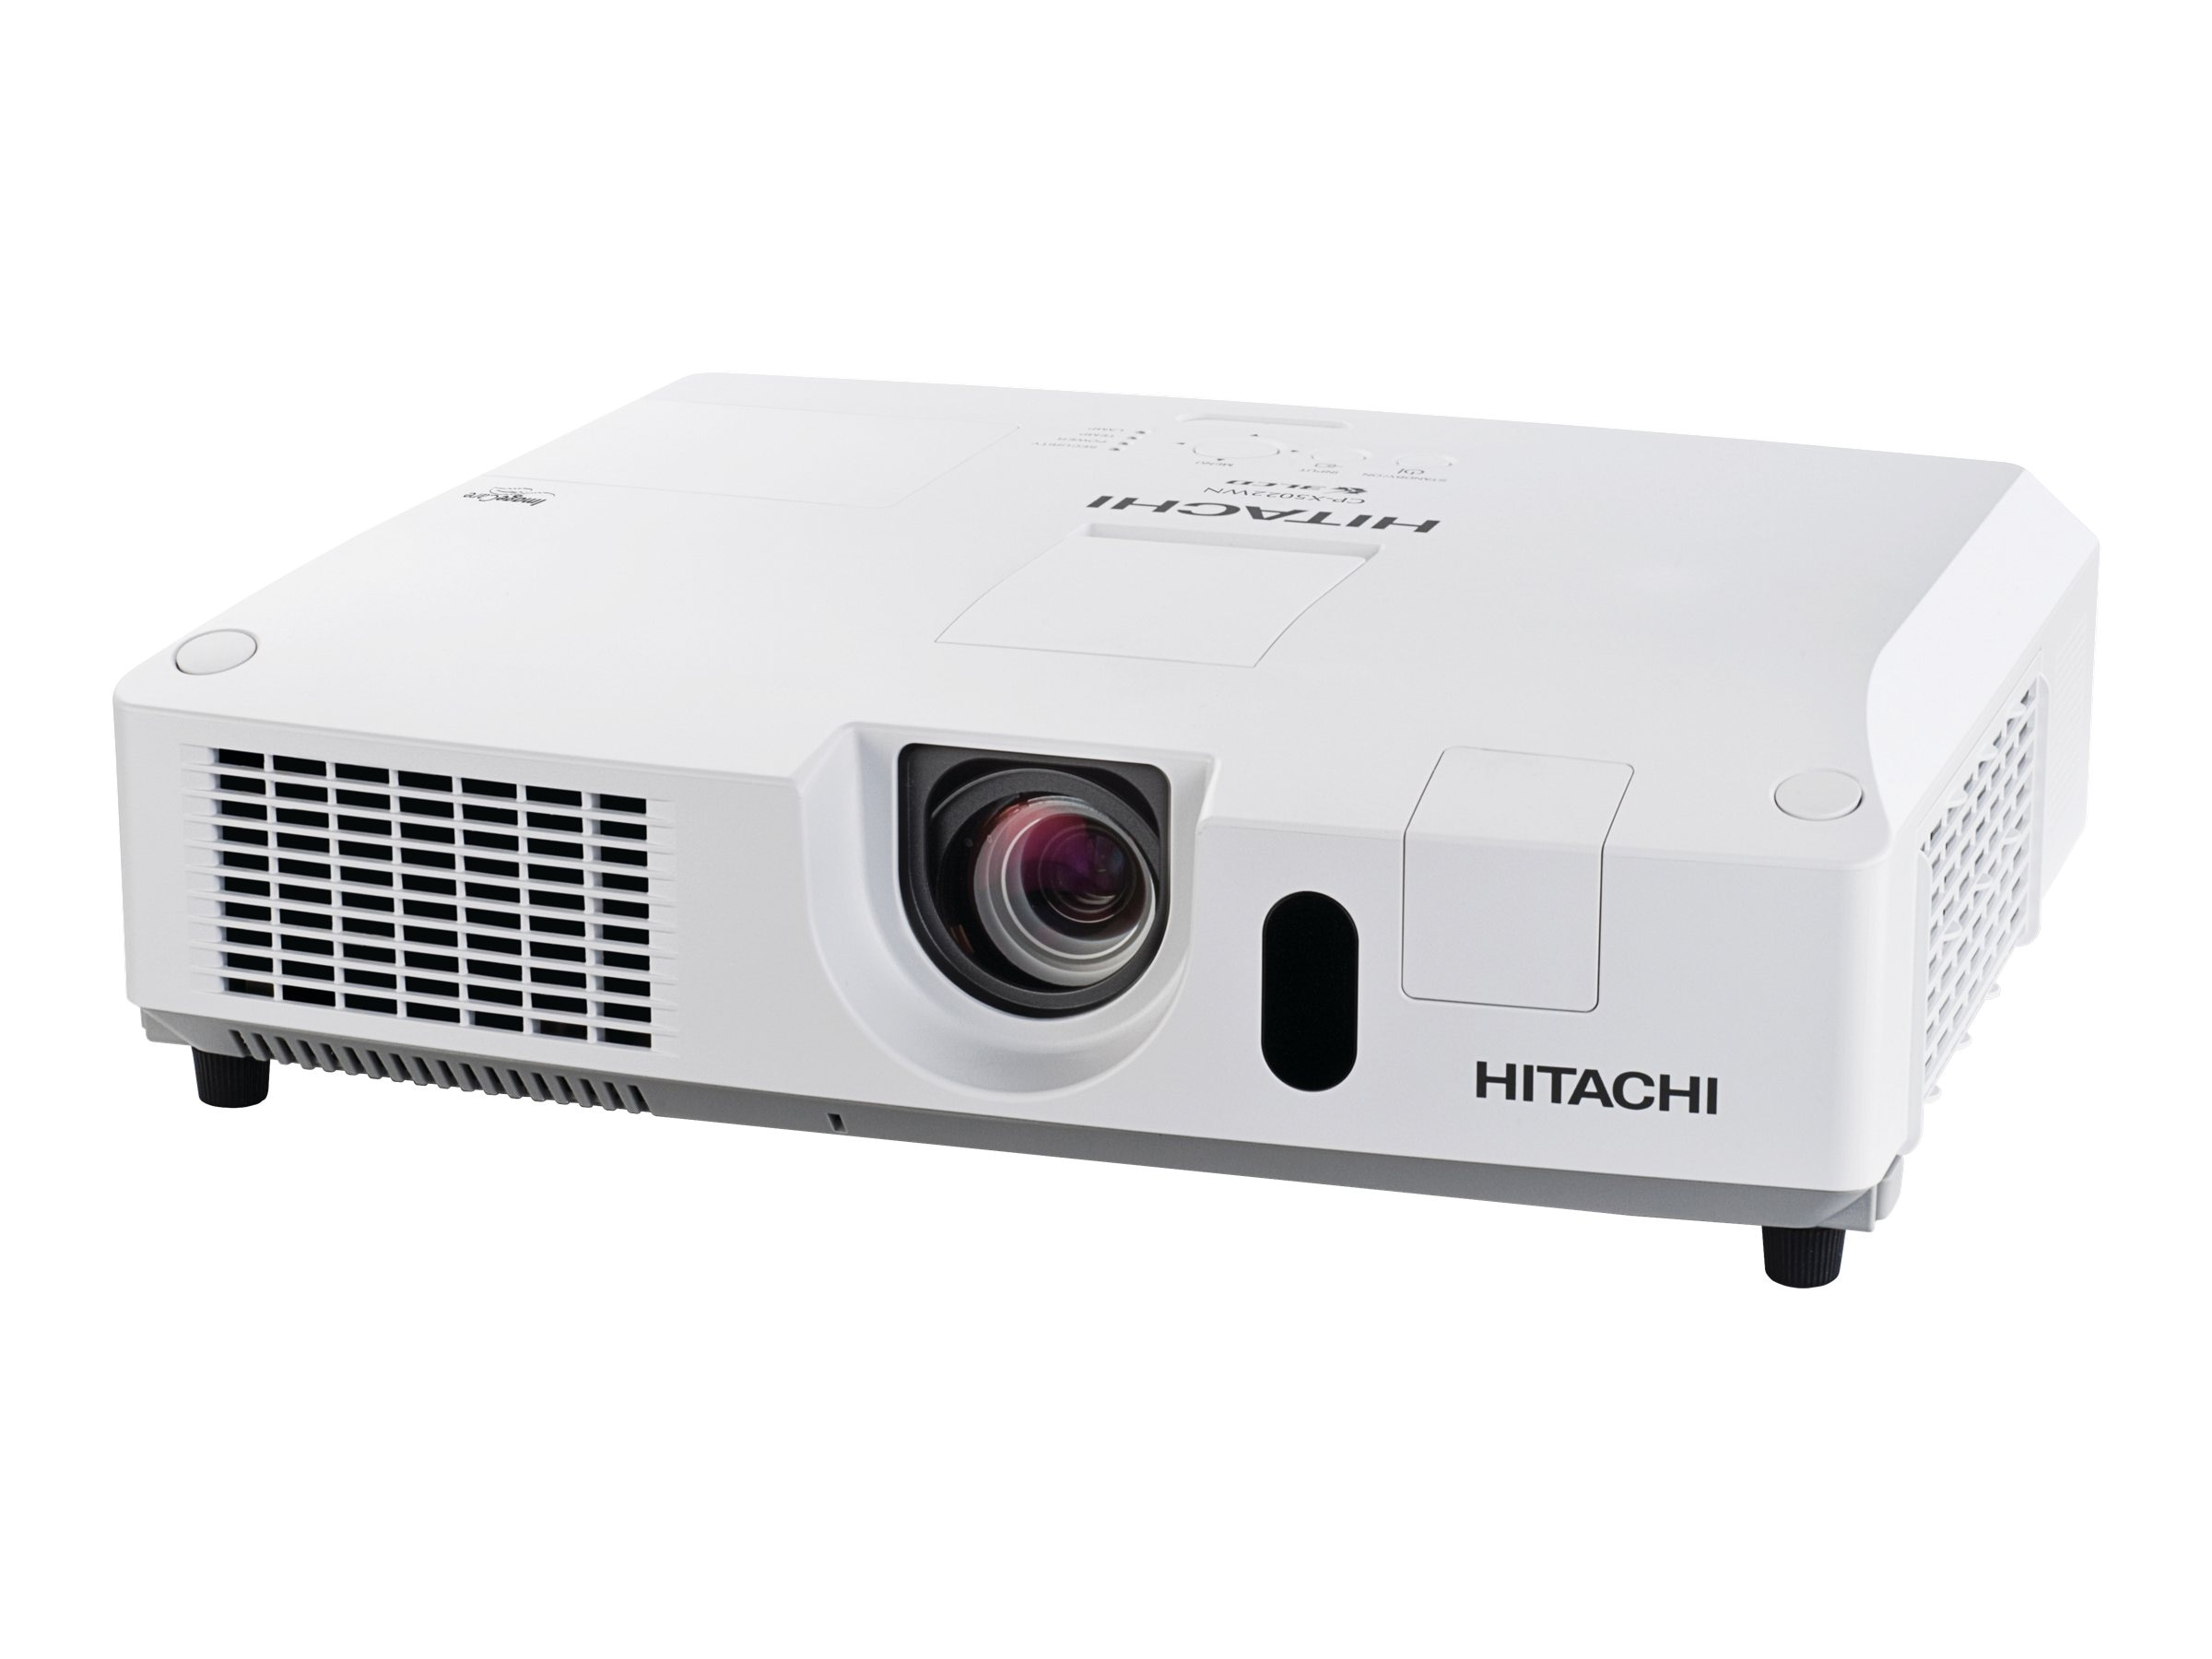 Open Box Hitachi CP-X5022WN XGA LCD Projector, 5000 Lumens, White, CP-X5022WN, 30844255, Projectors